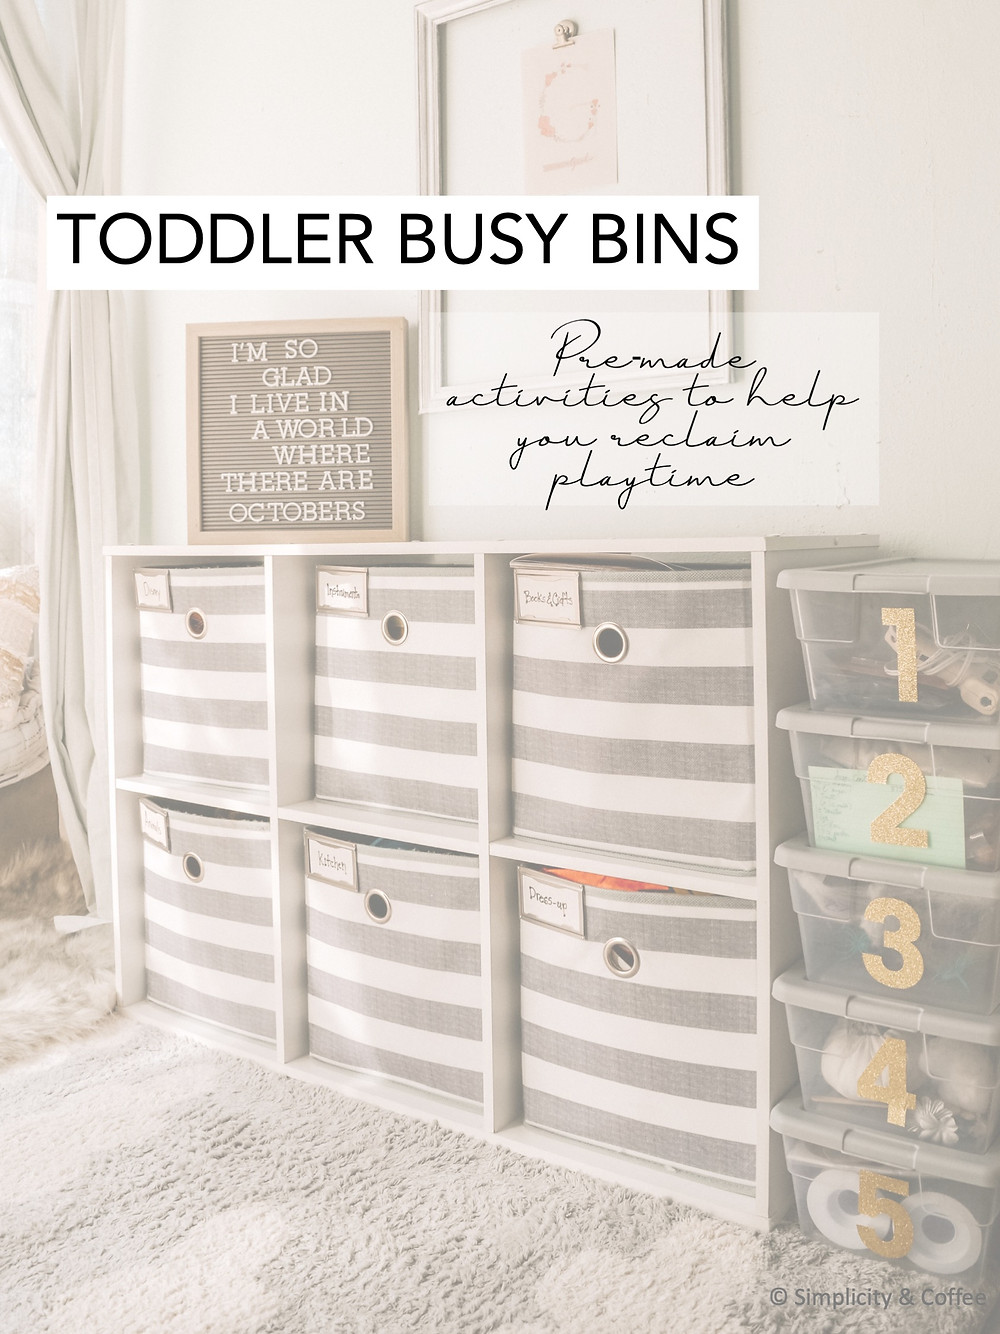 MOTHERHOOD | TODDLER BUSY BINS  Ever wonder how to keep up with your toddler's need to move quickly from activity to activity? These Busy Bins make things a little easier. Prepped crafts and activities are ready to go at the drop of a hat. Pin via Simplicityandcoffee.com #motherhood #momhack #momlife